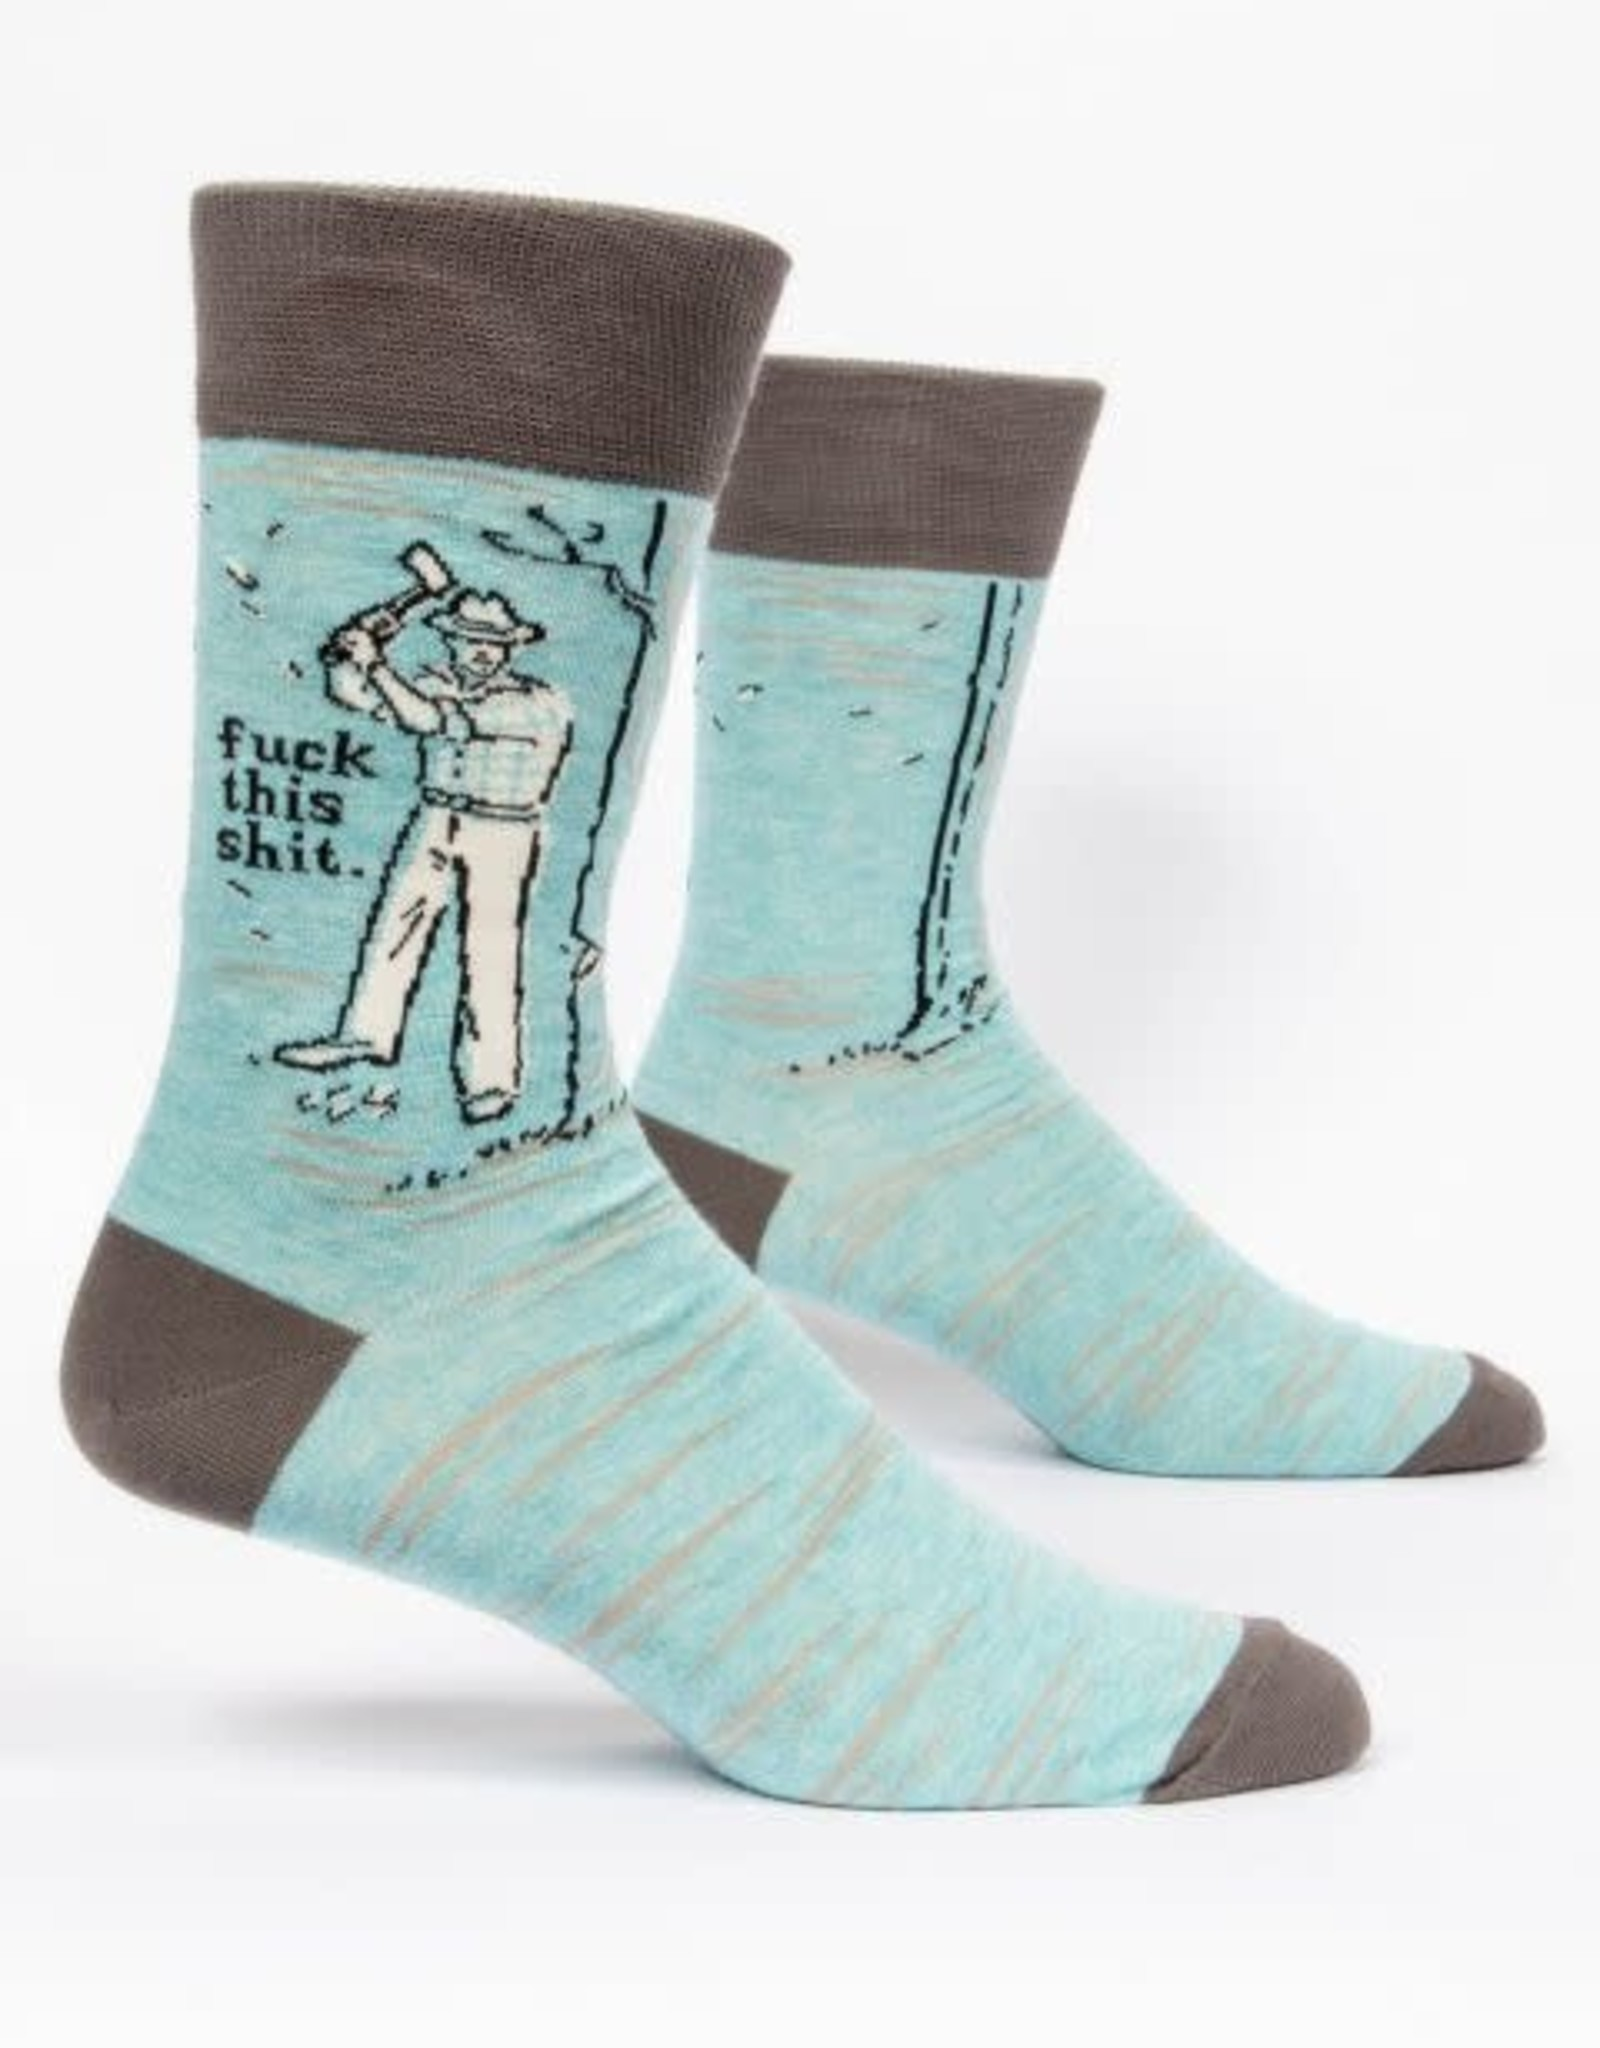 Blue Q BLUE Q FUCK THIS SHIT MENS SOCKS